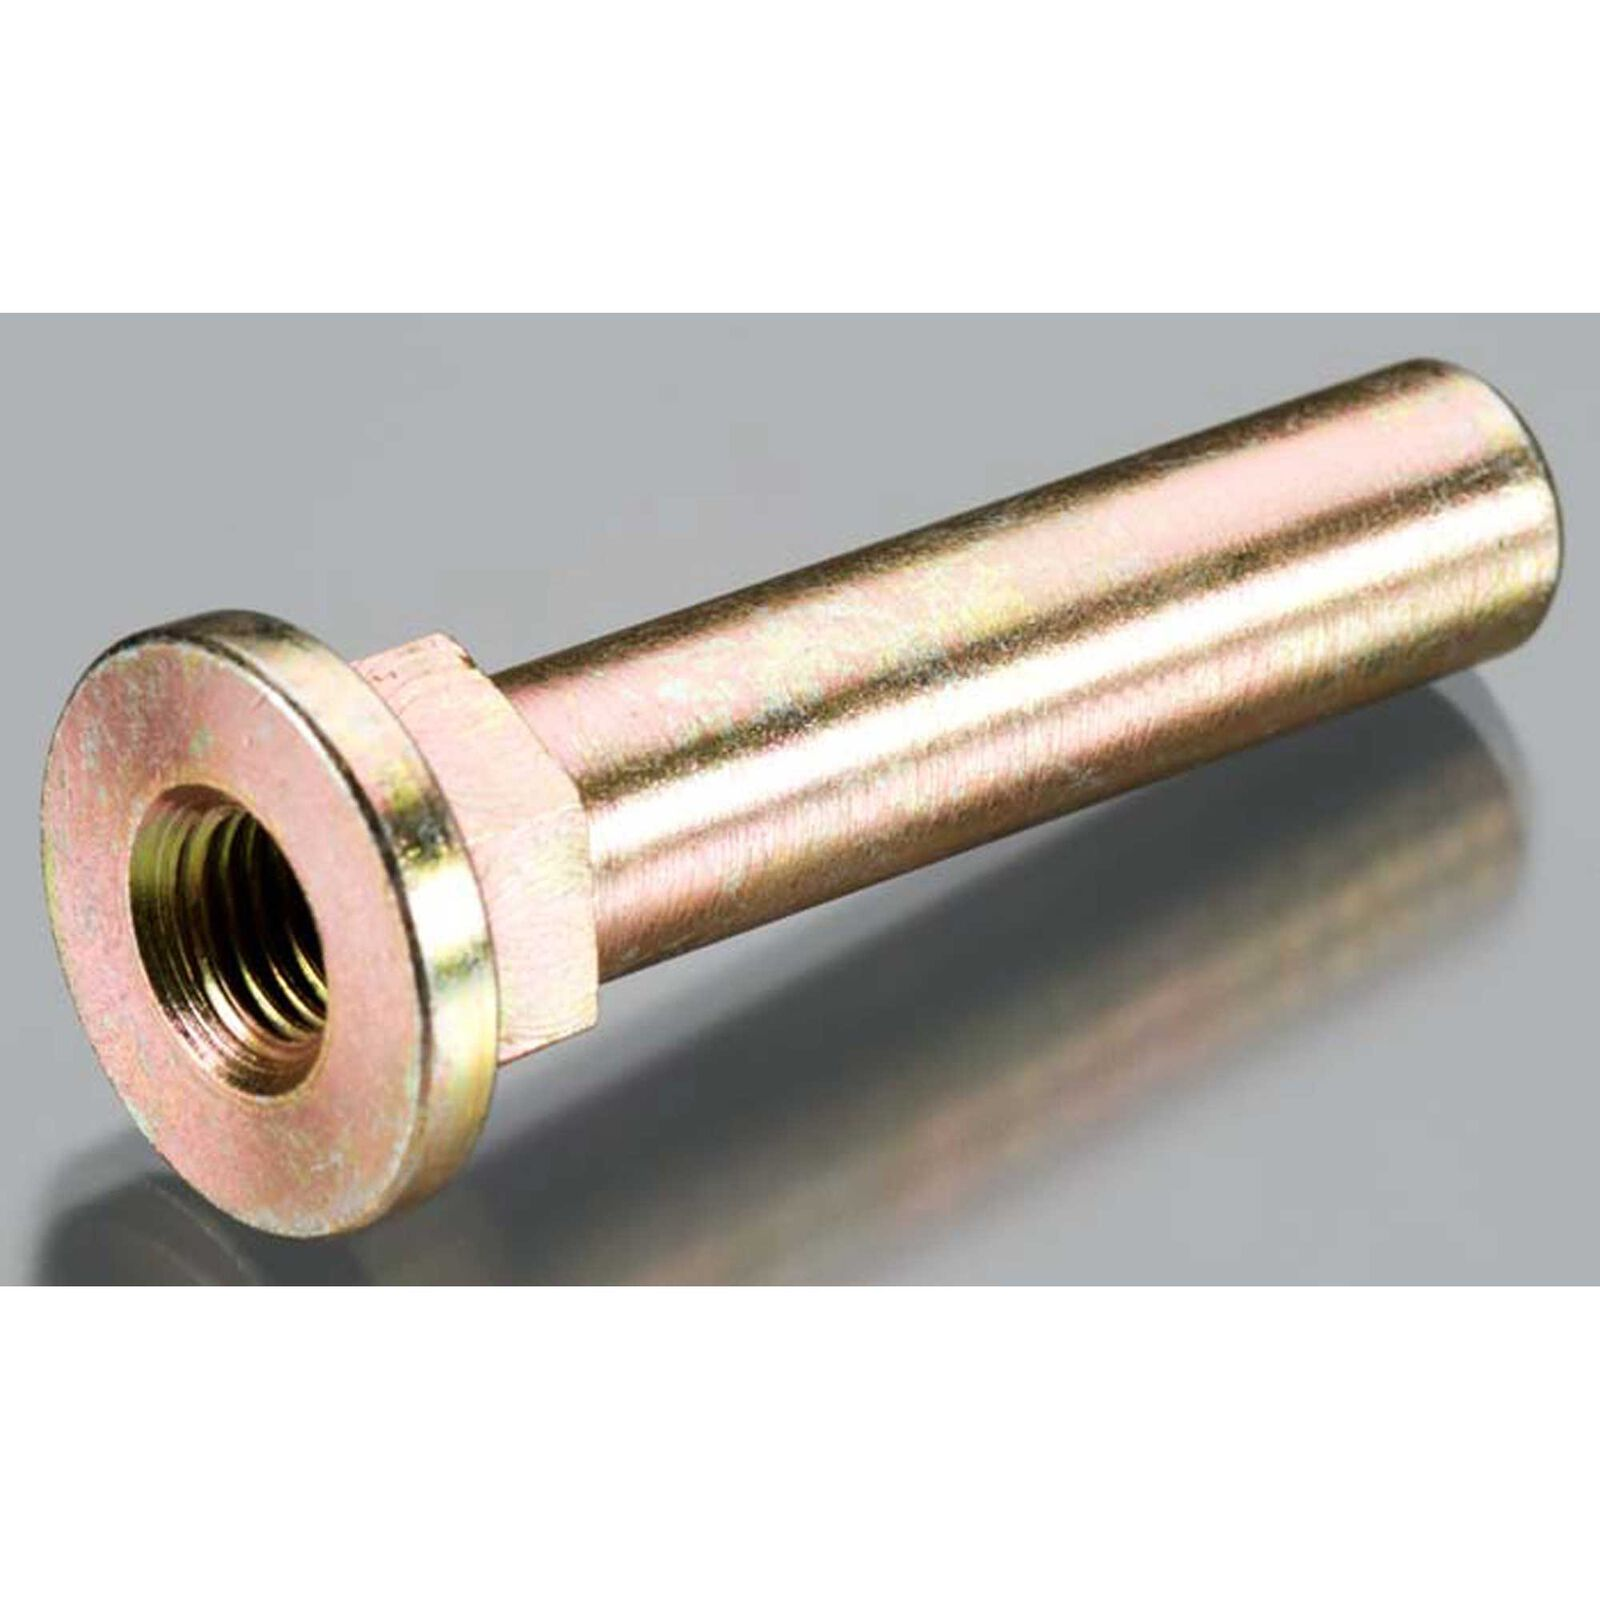 Propeller Drive Nut: DLE-85